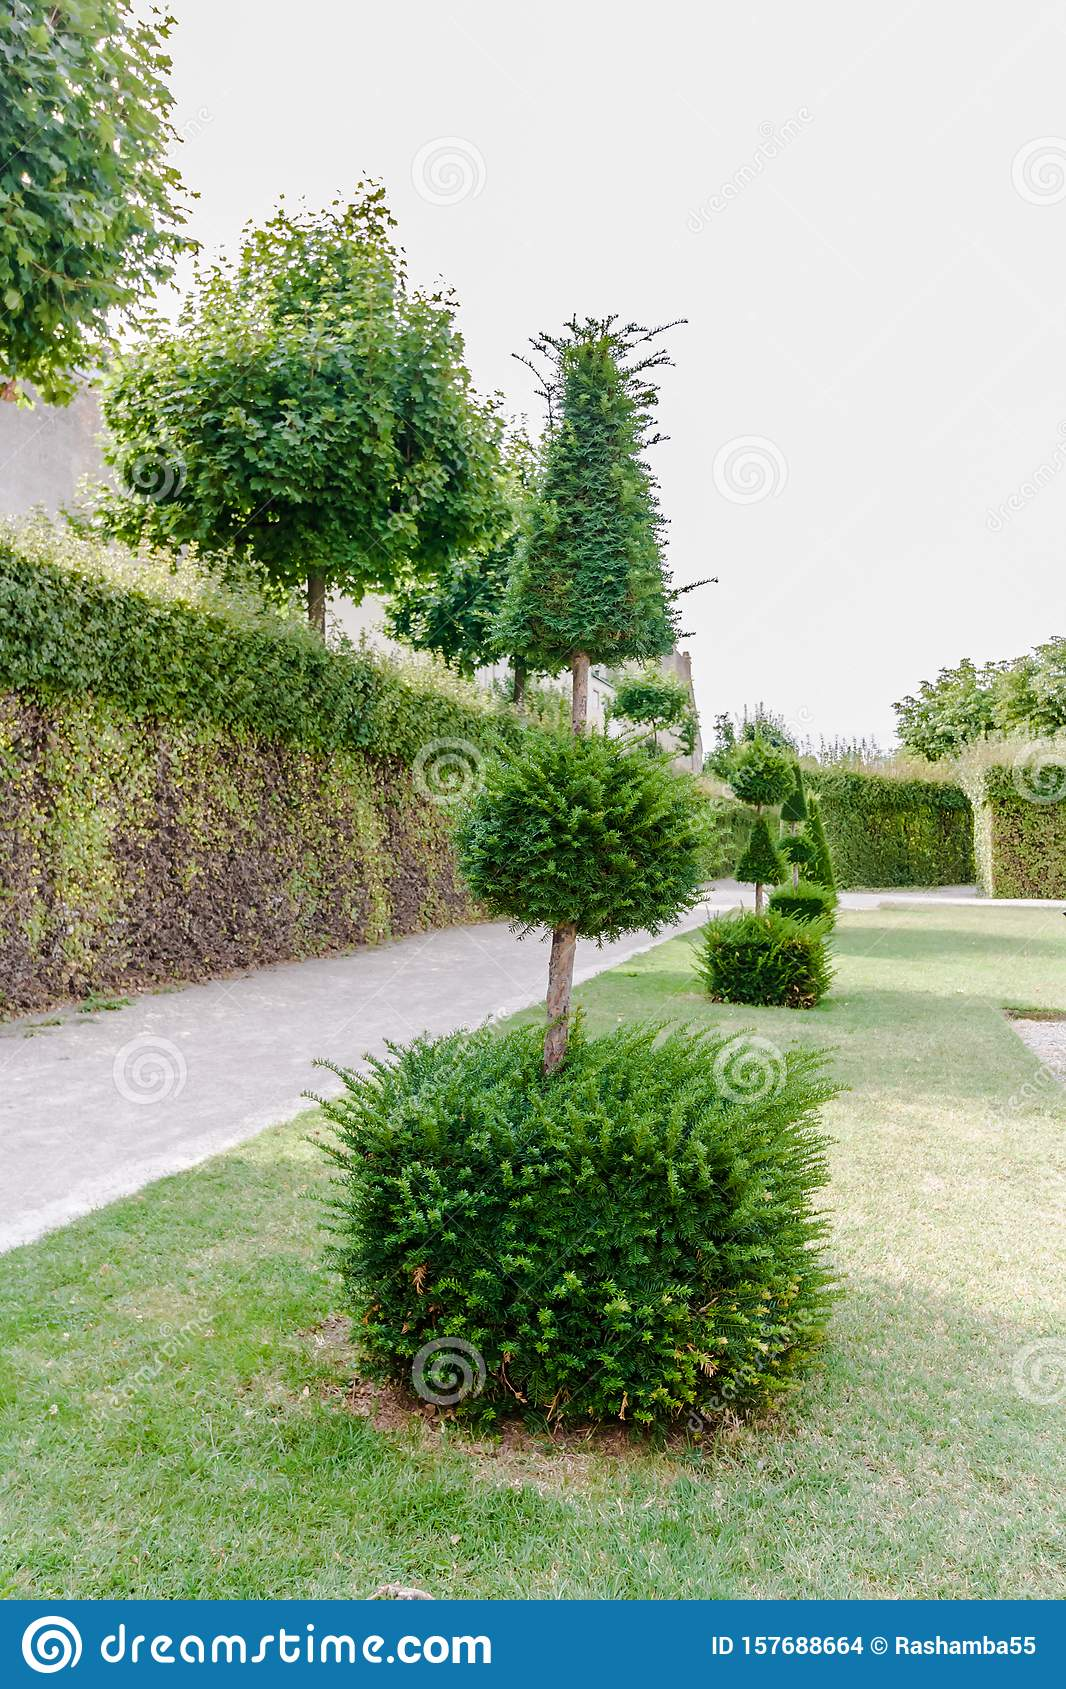 Geometric Plant Forms Of Landscape Design Trees Trimmed As Geometric Shapes Beautiful Garden Topiary Art Landscape Stock Photo Image Of Garden Growth 157688664